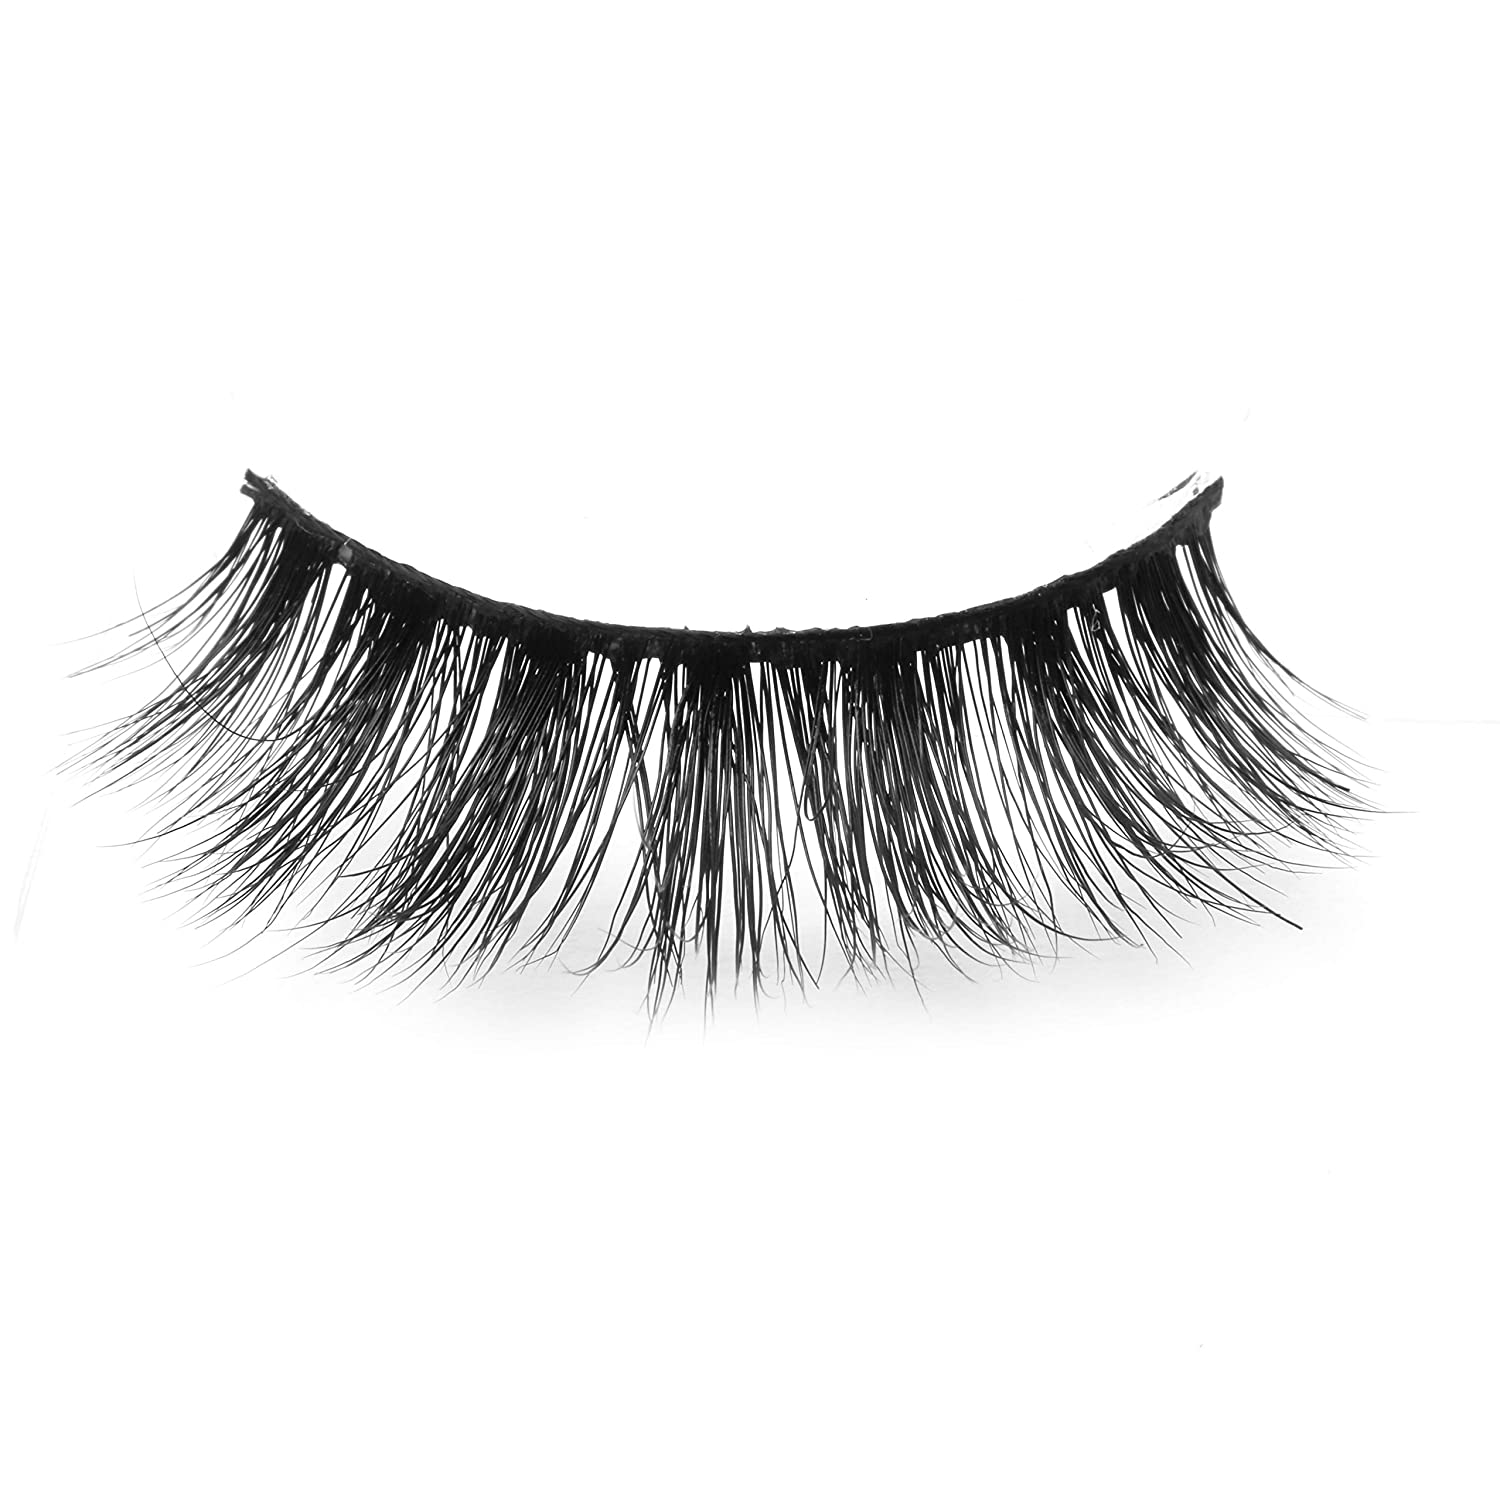 Arimika Handmade 3D Mink Fake Eyelashes -Reusable with Sturdy Flexible Band, Lightweight Fluffy Natural Look, Cruelty Free